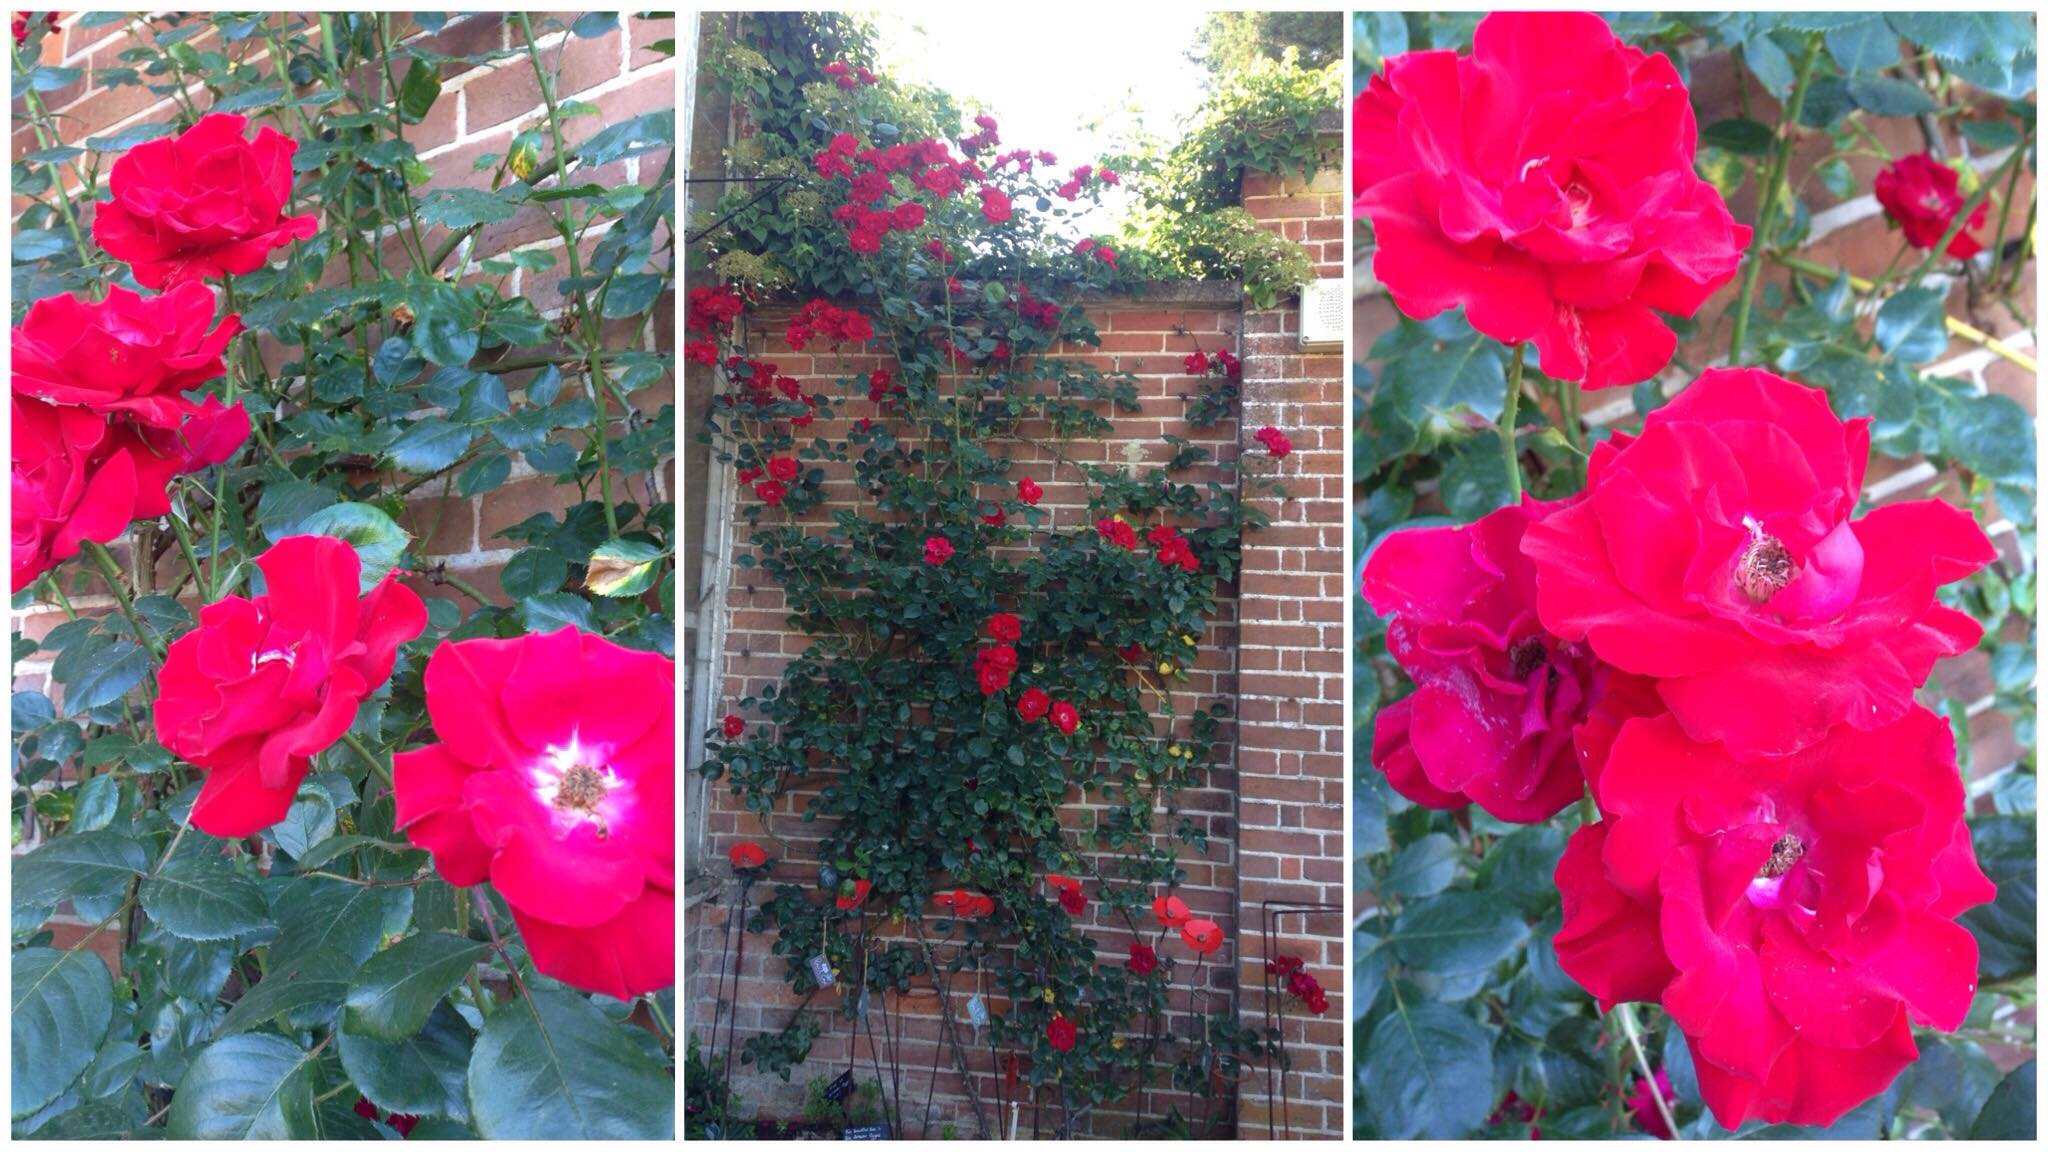 The roses in the height of summer - full bloom!